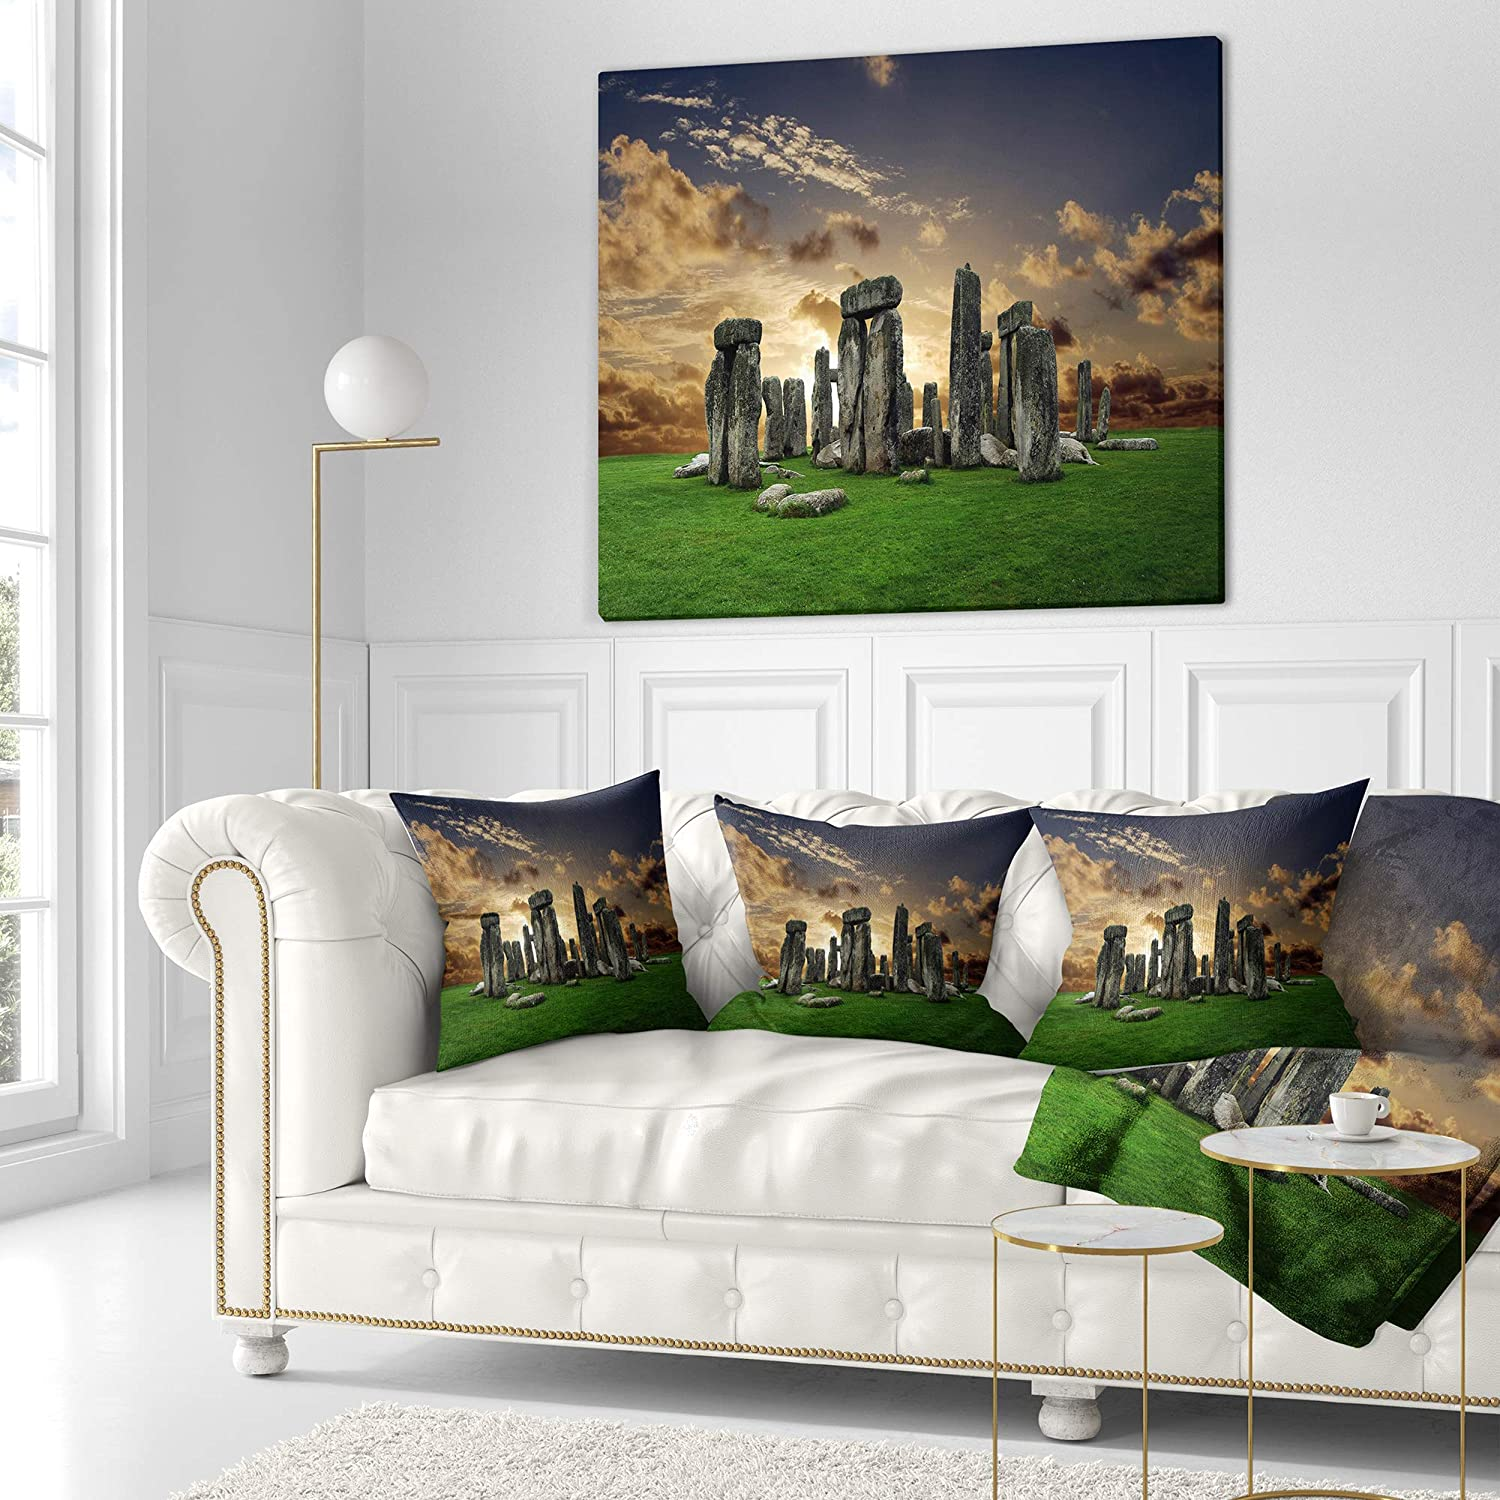 x 26 in Sofa Throw Pillow 26 in Designart CU6820-26-26 Stonehenge Landscape Photography Cushion Cover for Living Room in Insert Printed On Both Side